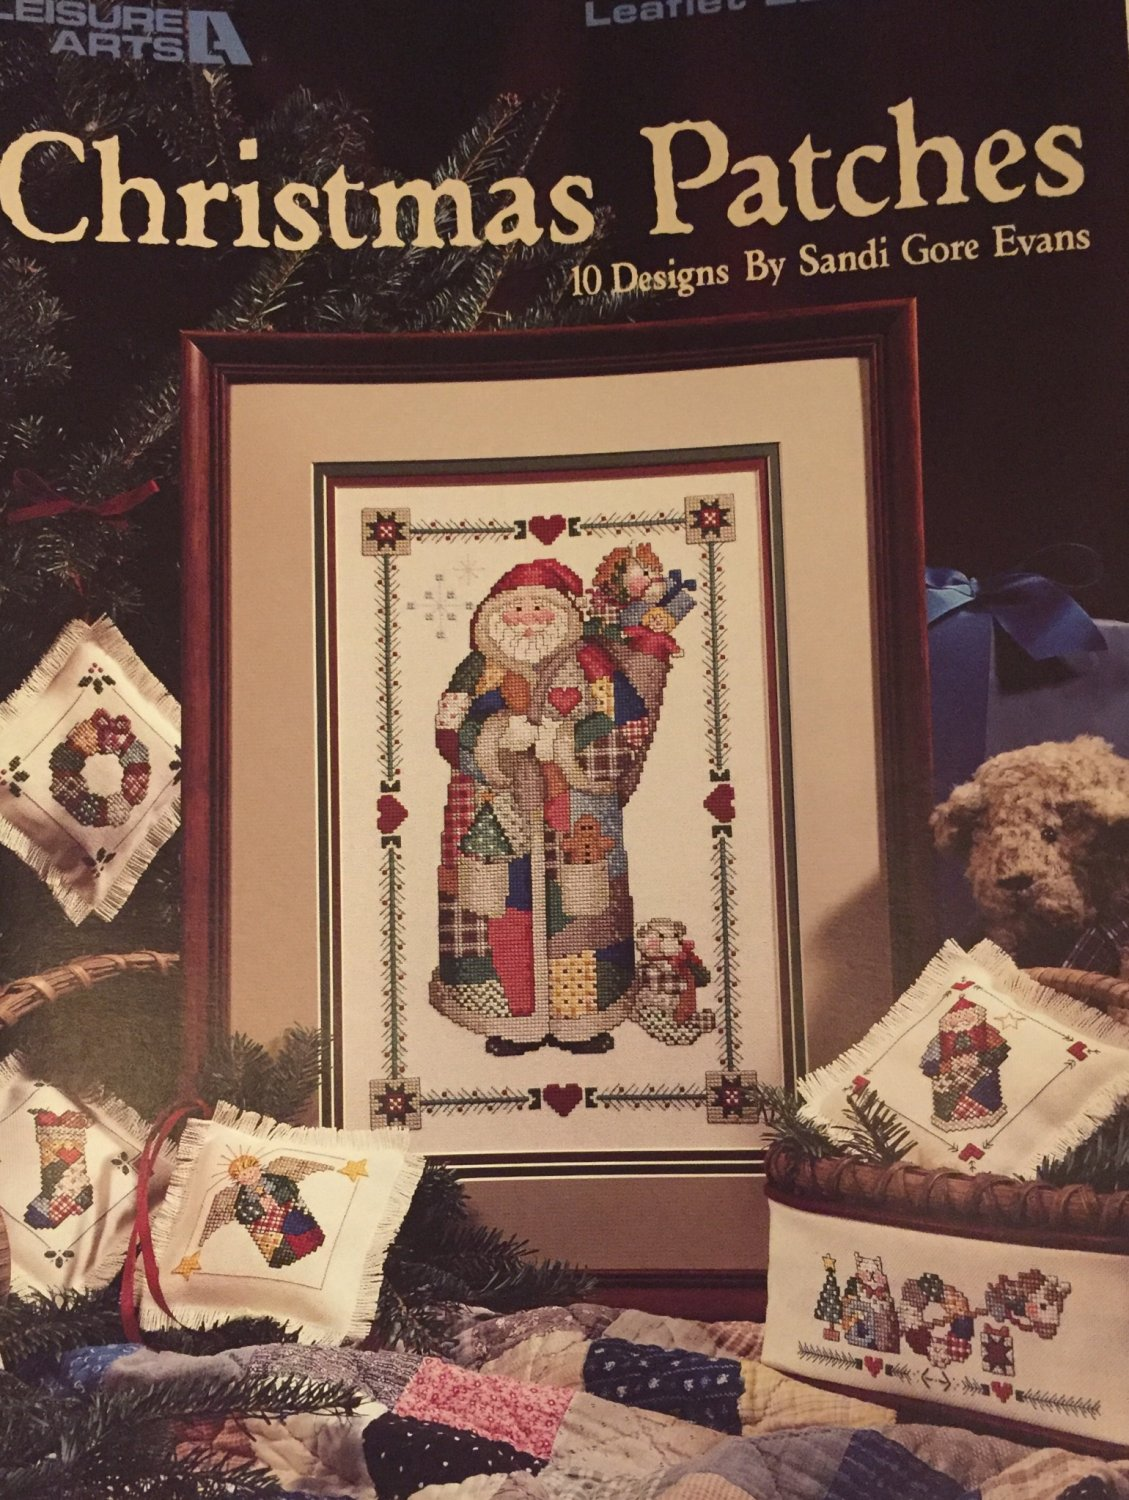 SOLD OUT Leisure Arts #2202 Christmas Patches Cross Stitch Pattern 10 Designs by Sandi Gore Evans.